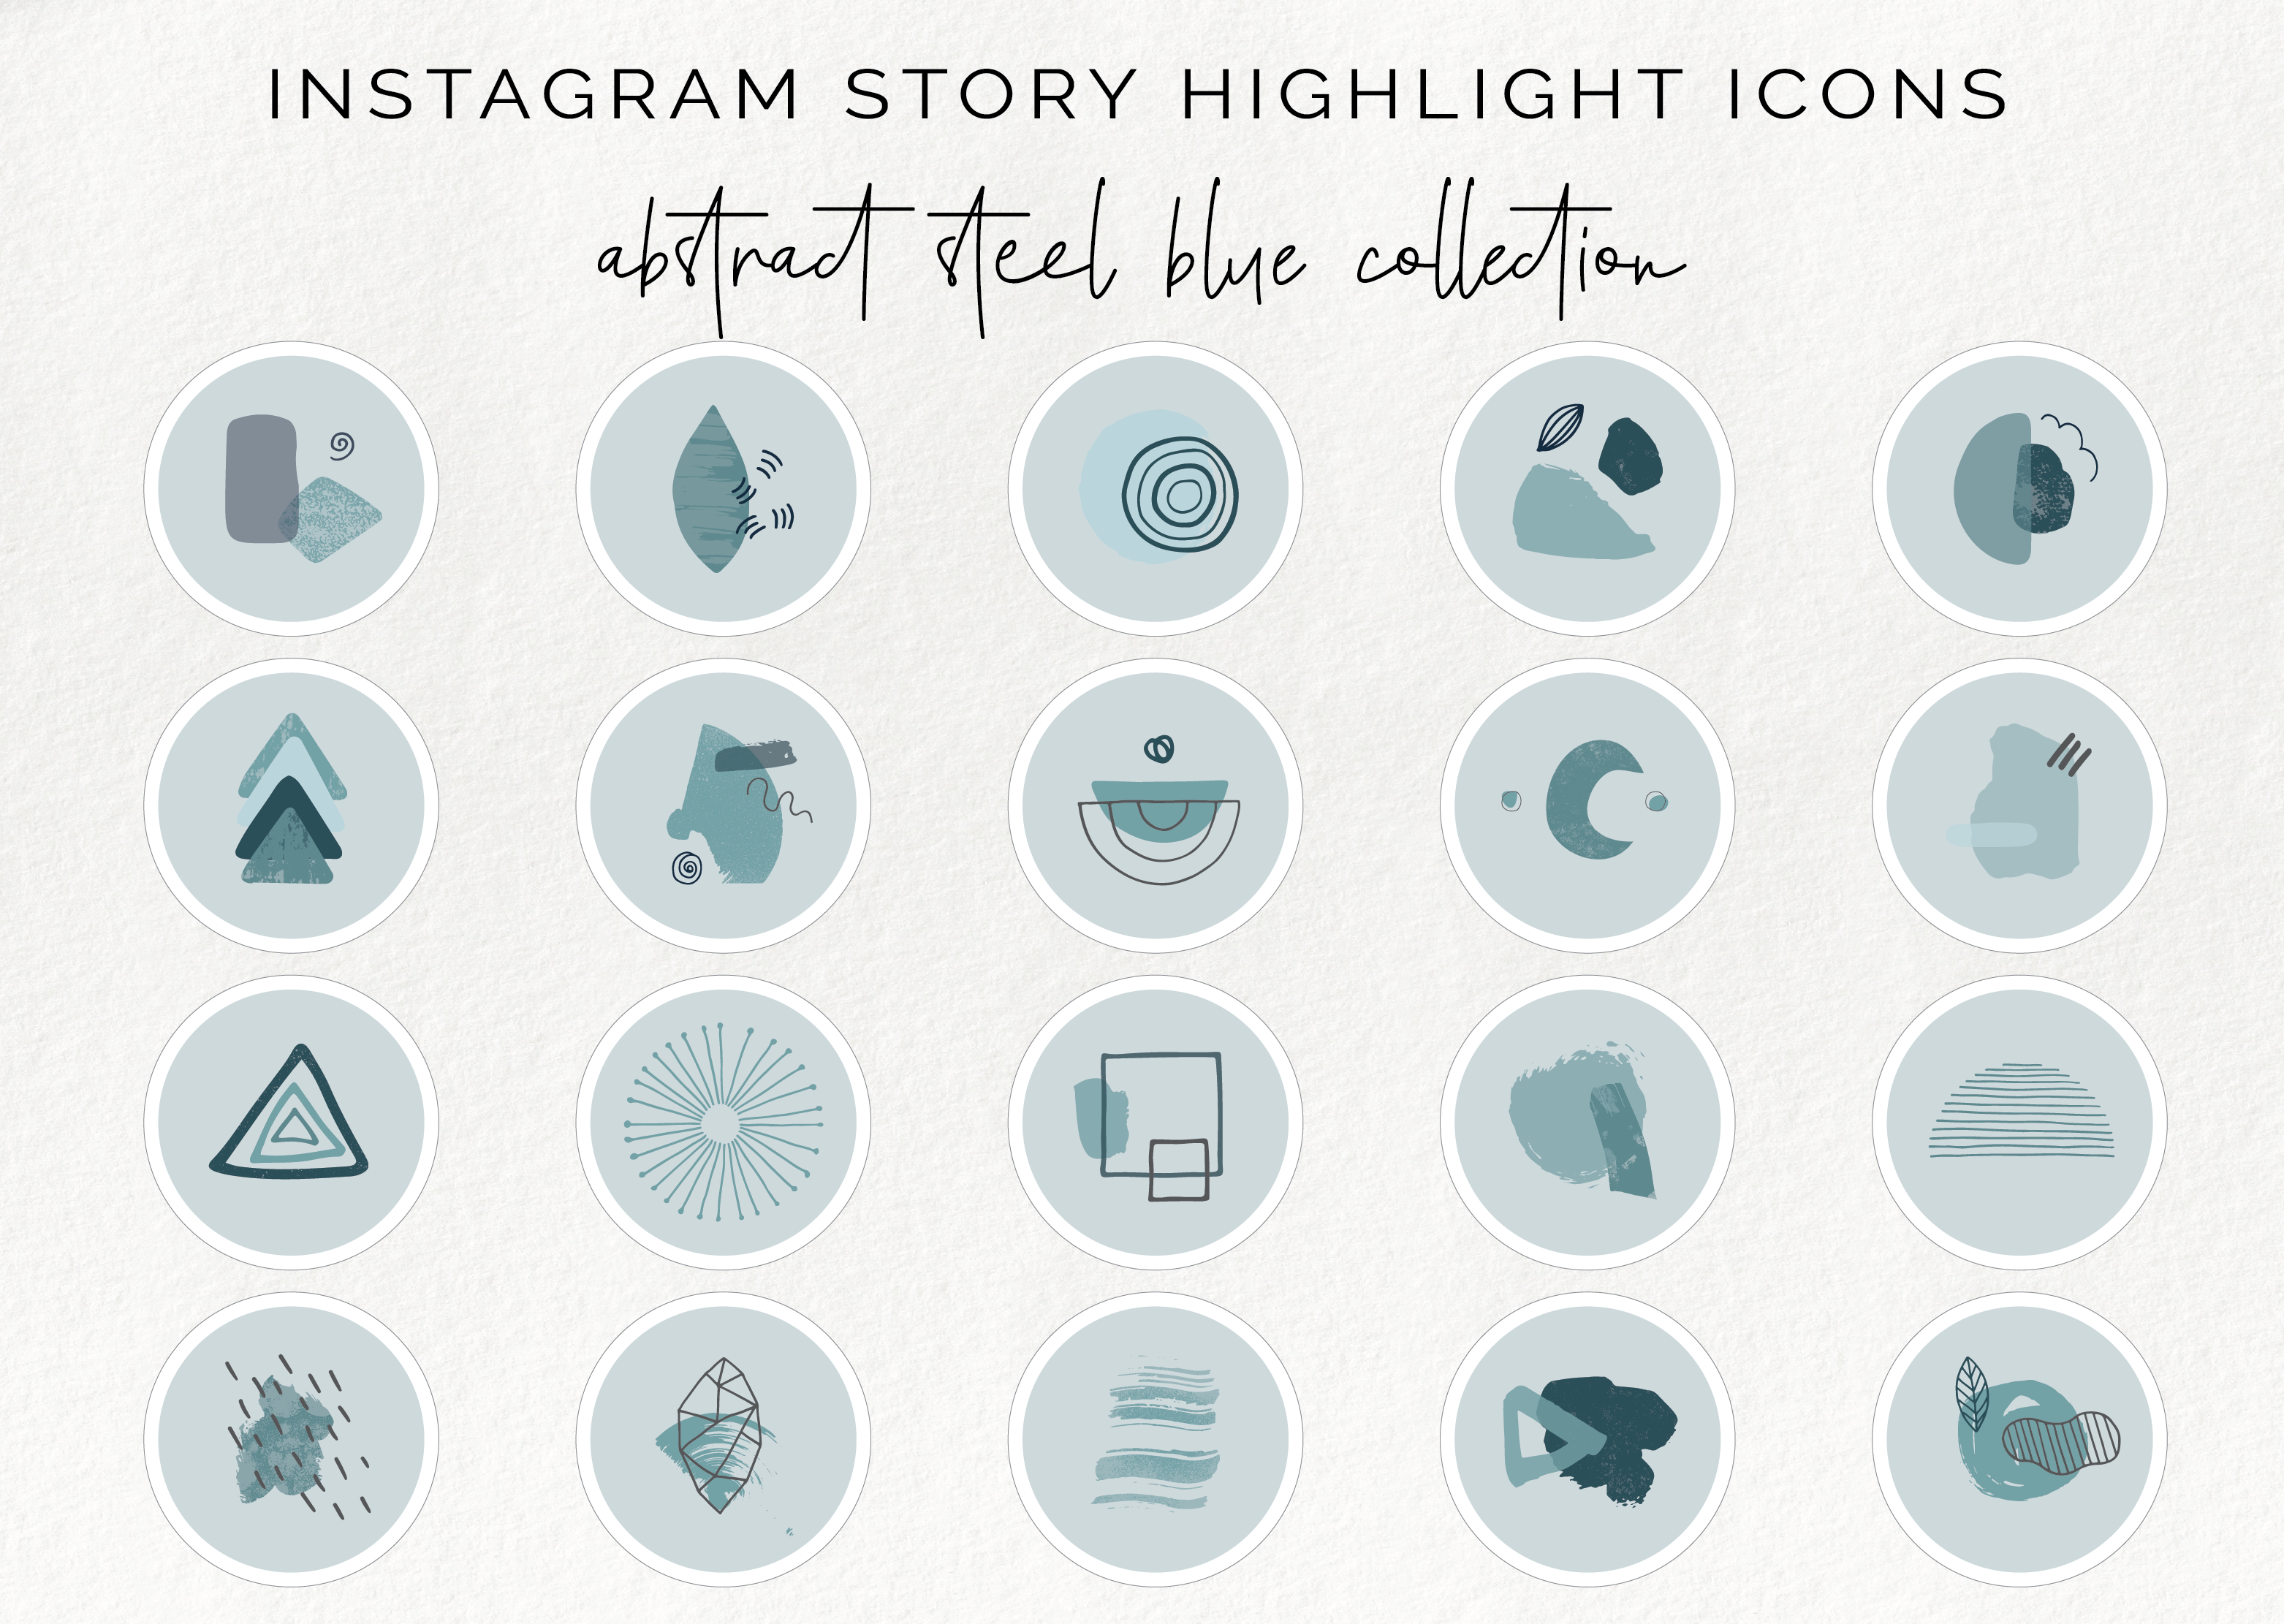 20 Instagram Story Highlight Icons Abstract Blue Story Covers By